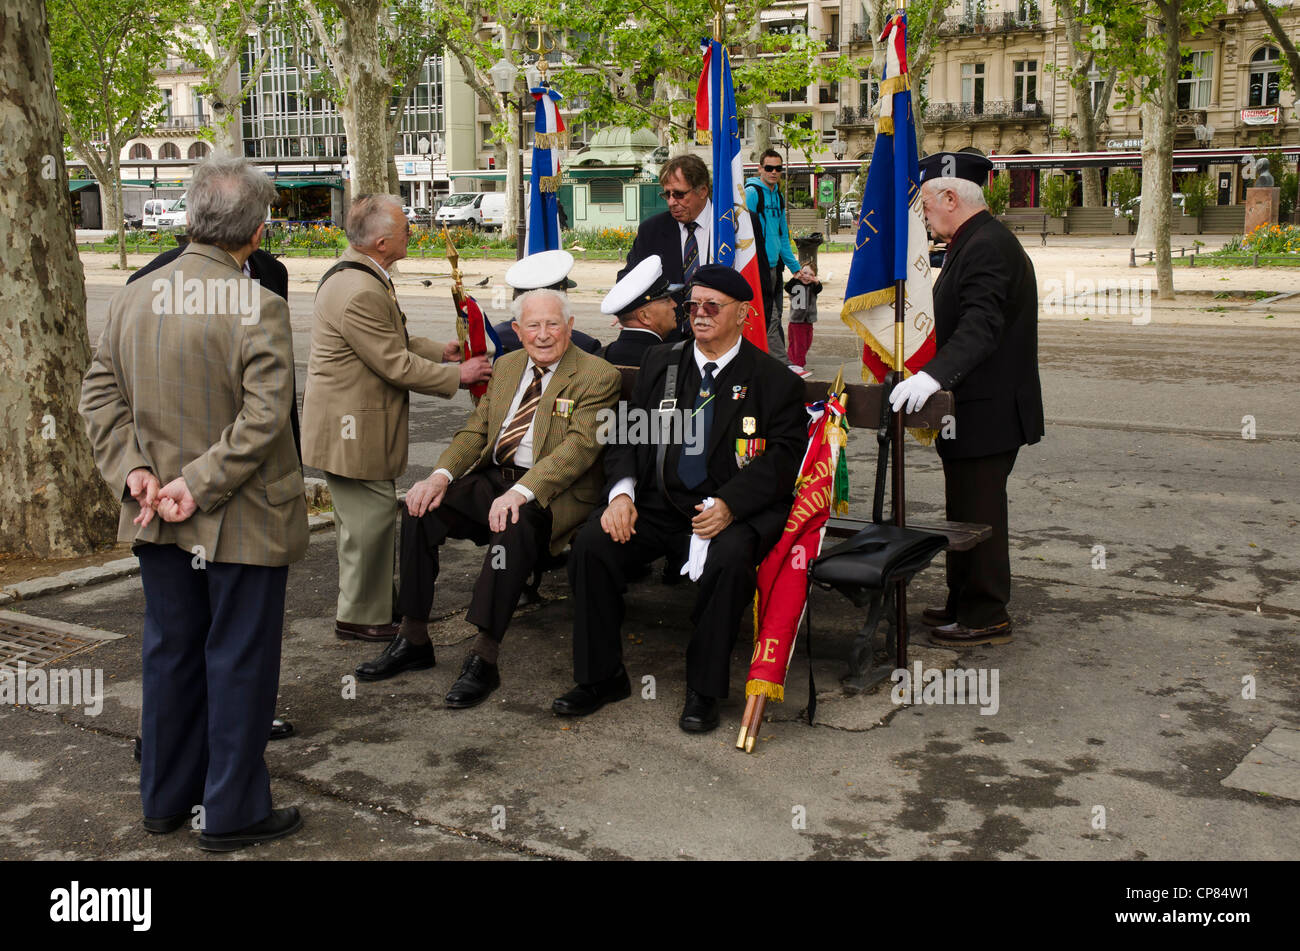 Veterans of World War II assembling before a ceremony in Montpellier April 29, 2012. - Stock Image